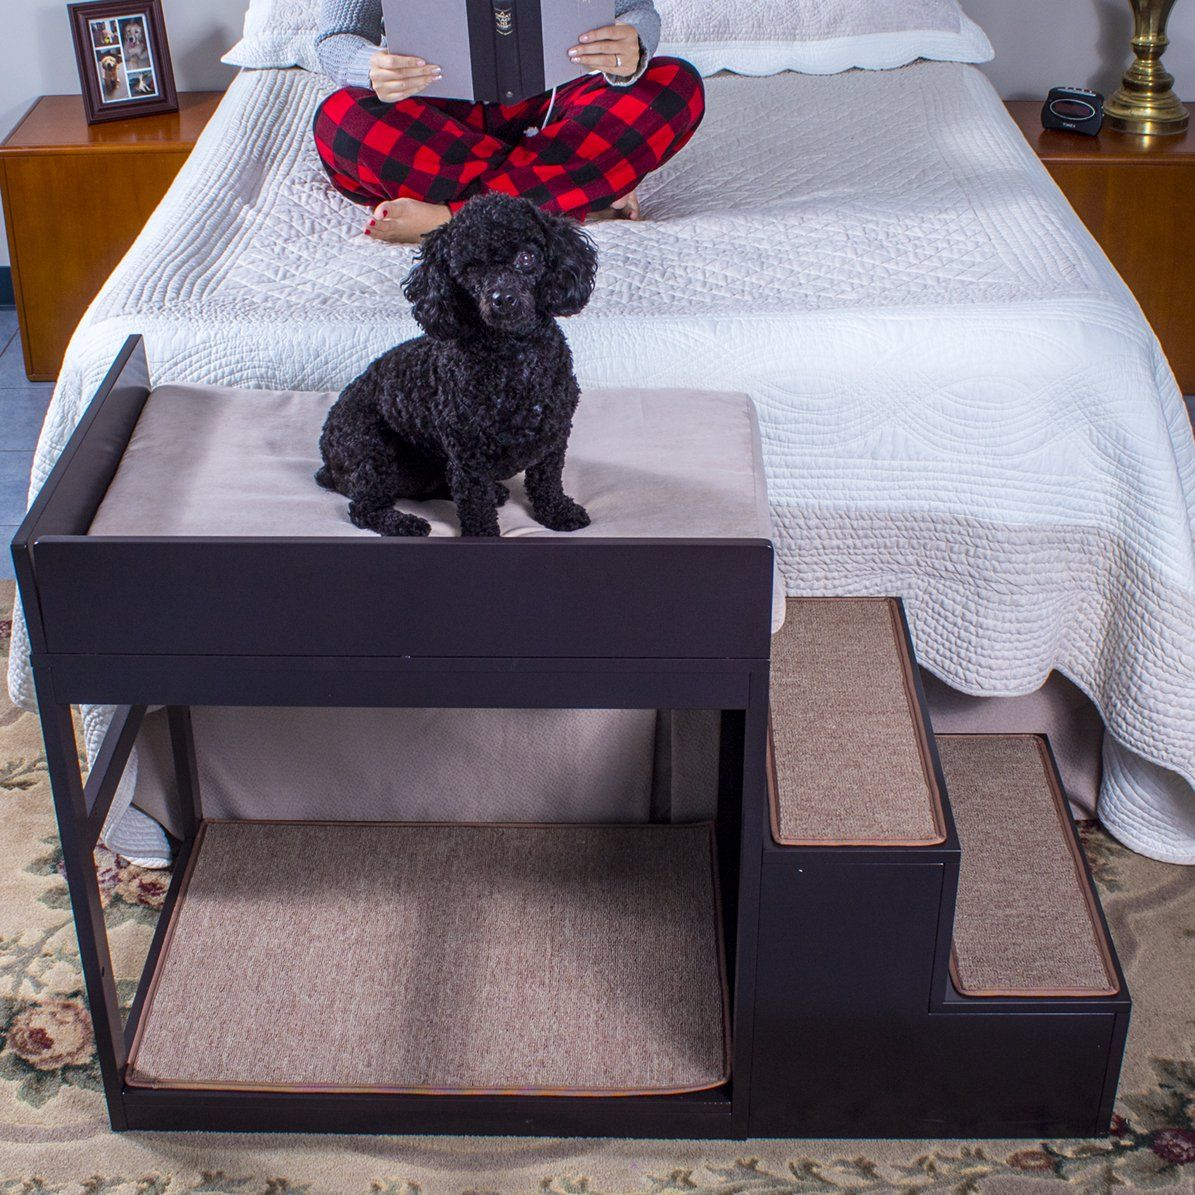 Penn Plax Multi Level Pet Dog Stairs Multicolor Walmart Com In 2021 Dog Bunk Beds Dog Stairs Pet Stairs